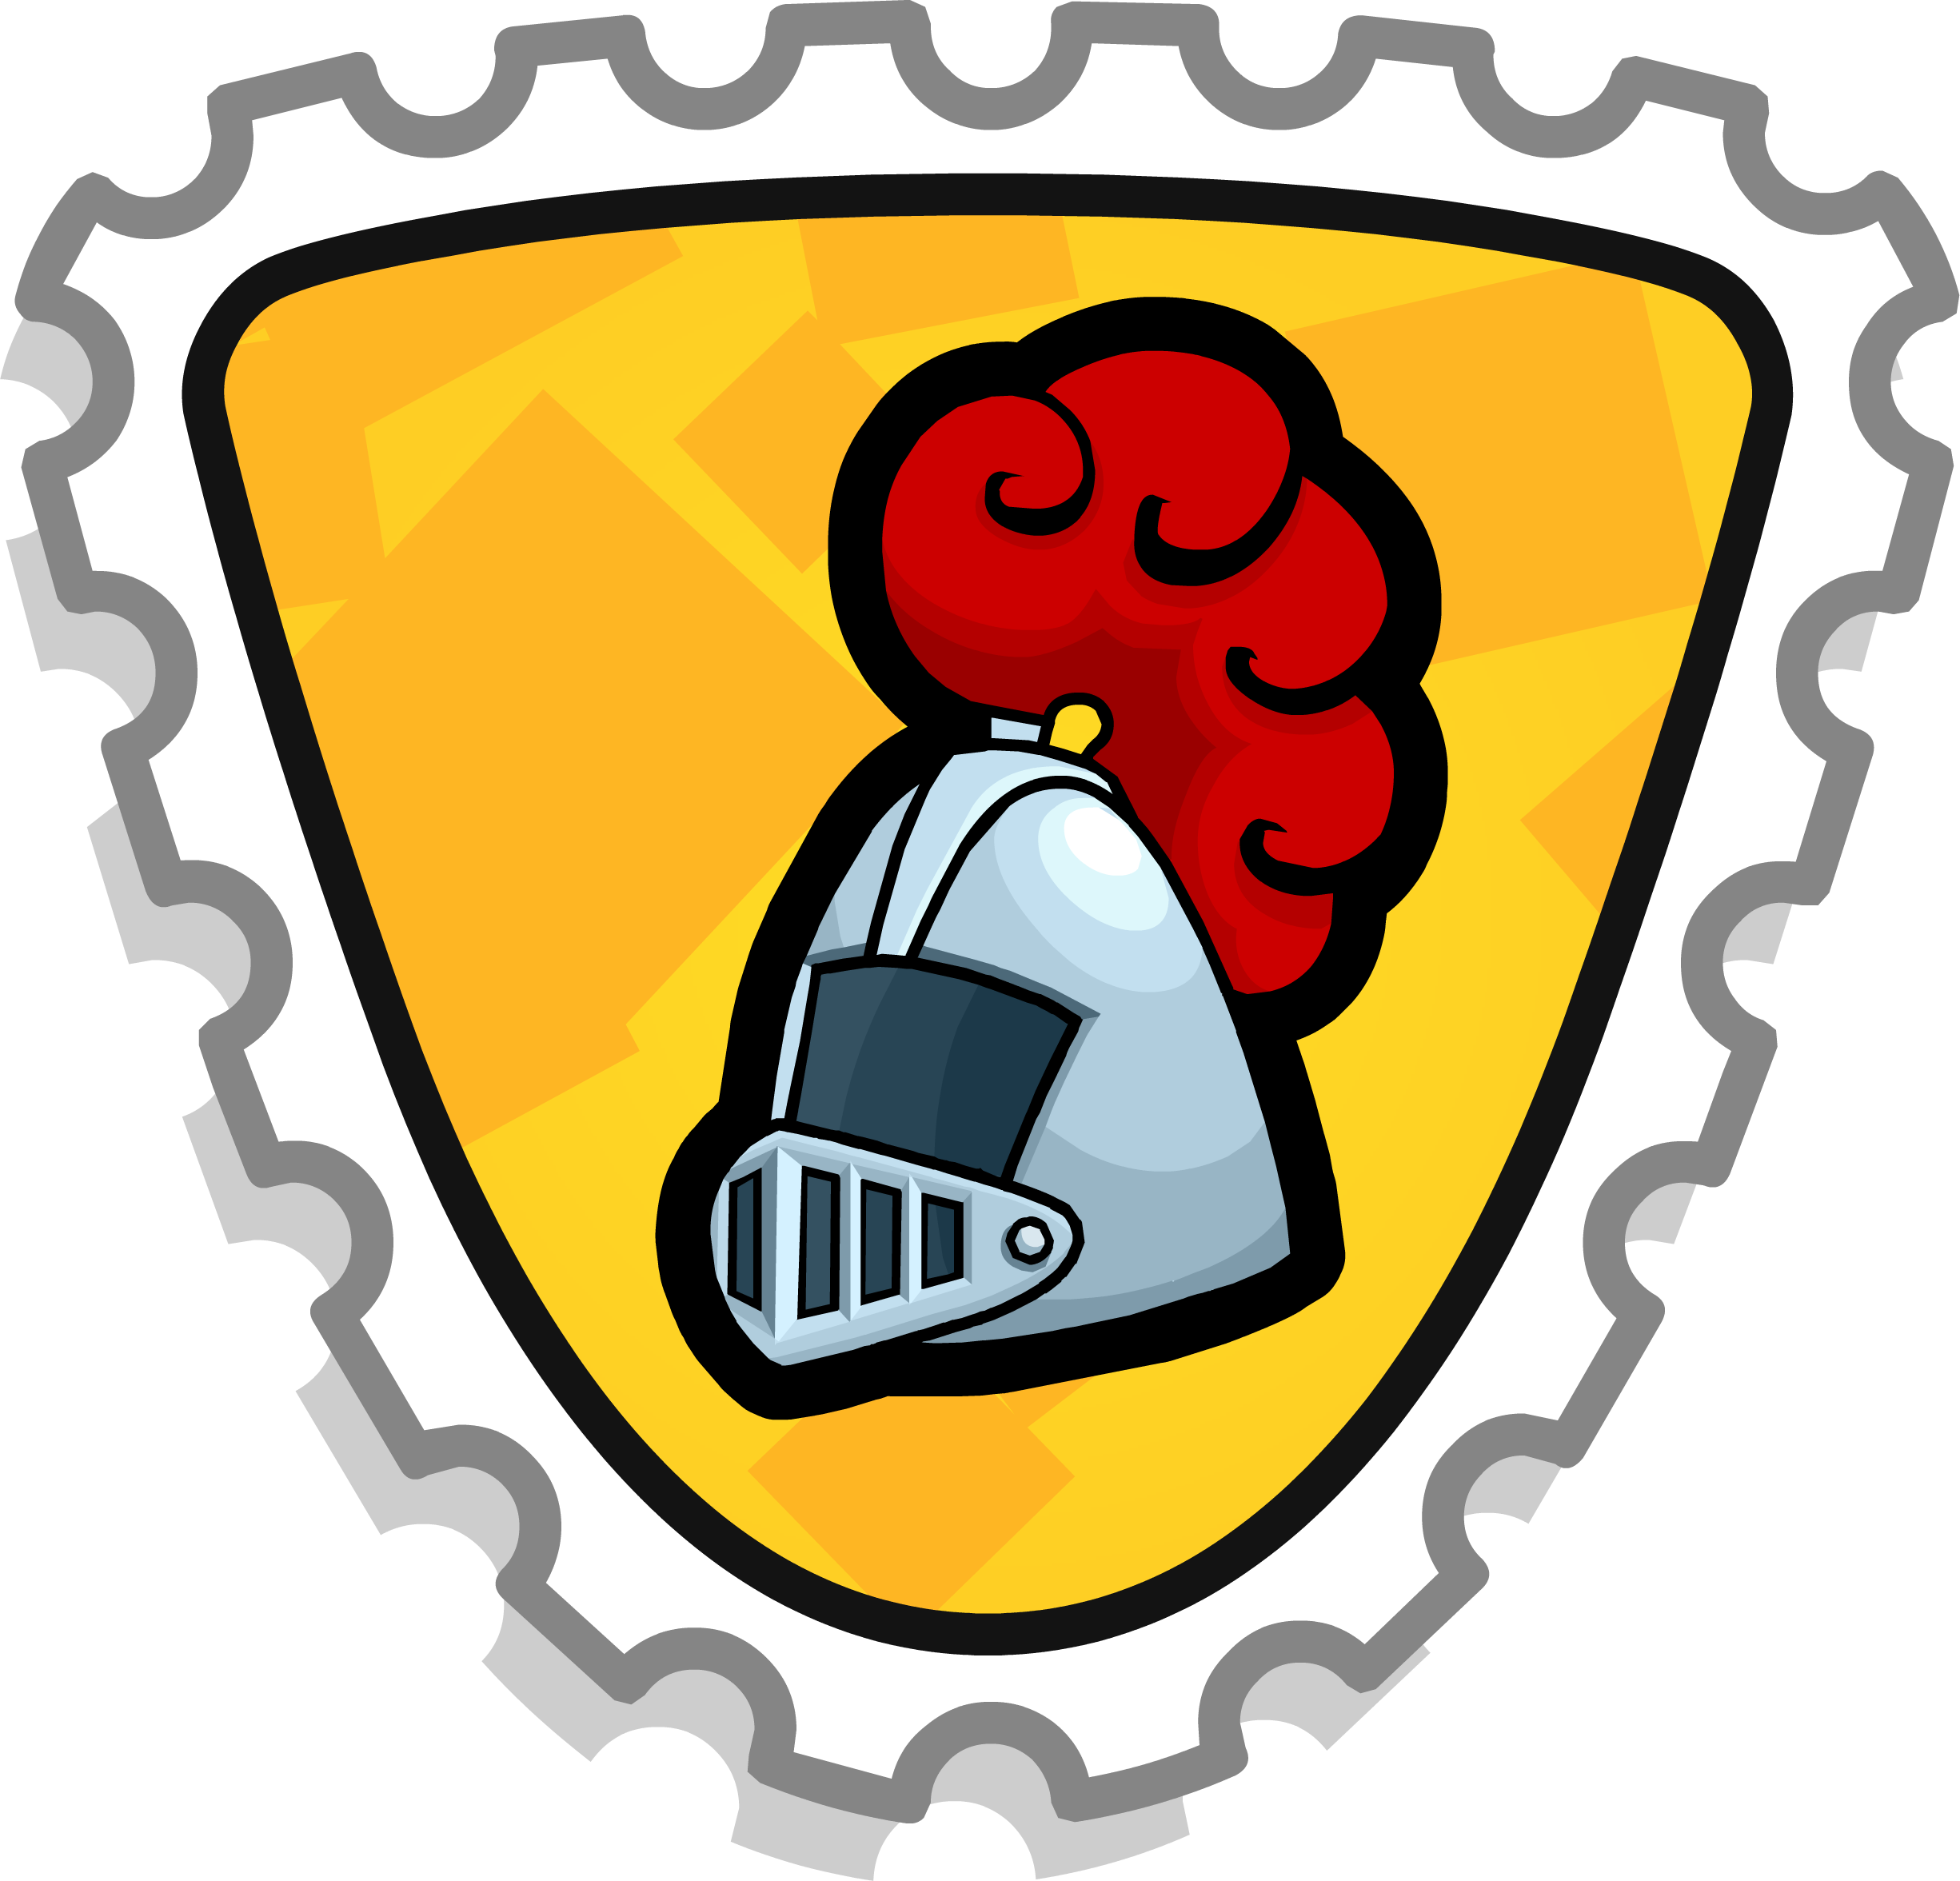 Stamp clipart secret. Noble knight club penguin